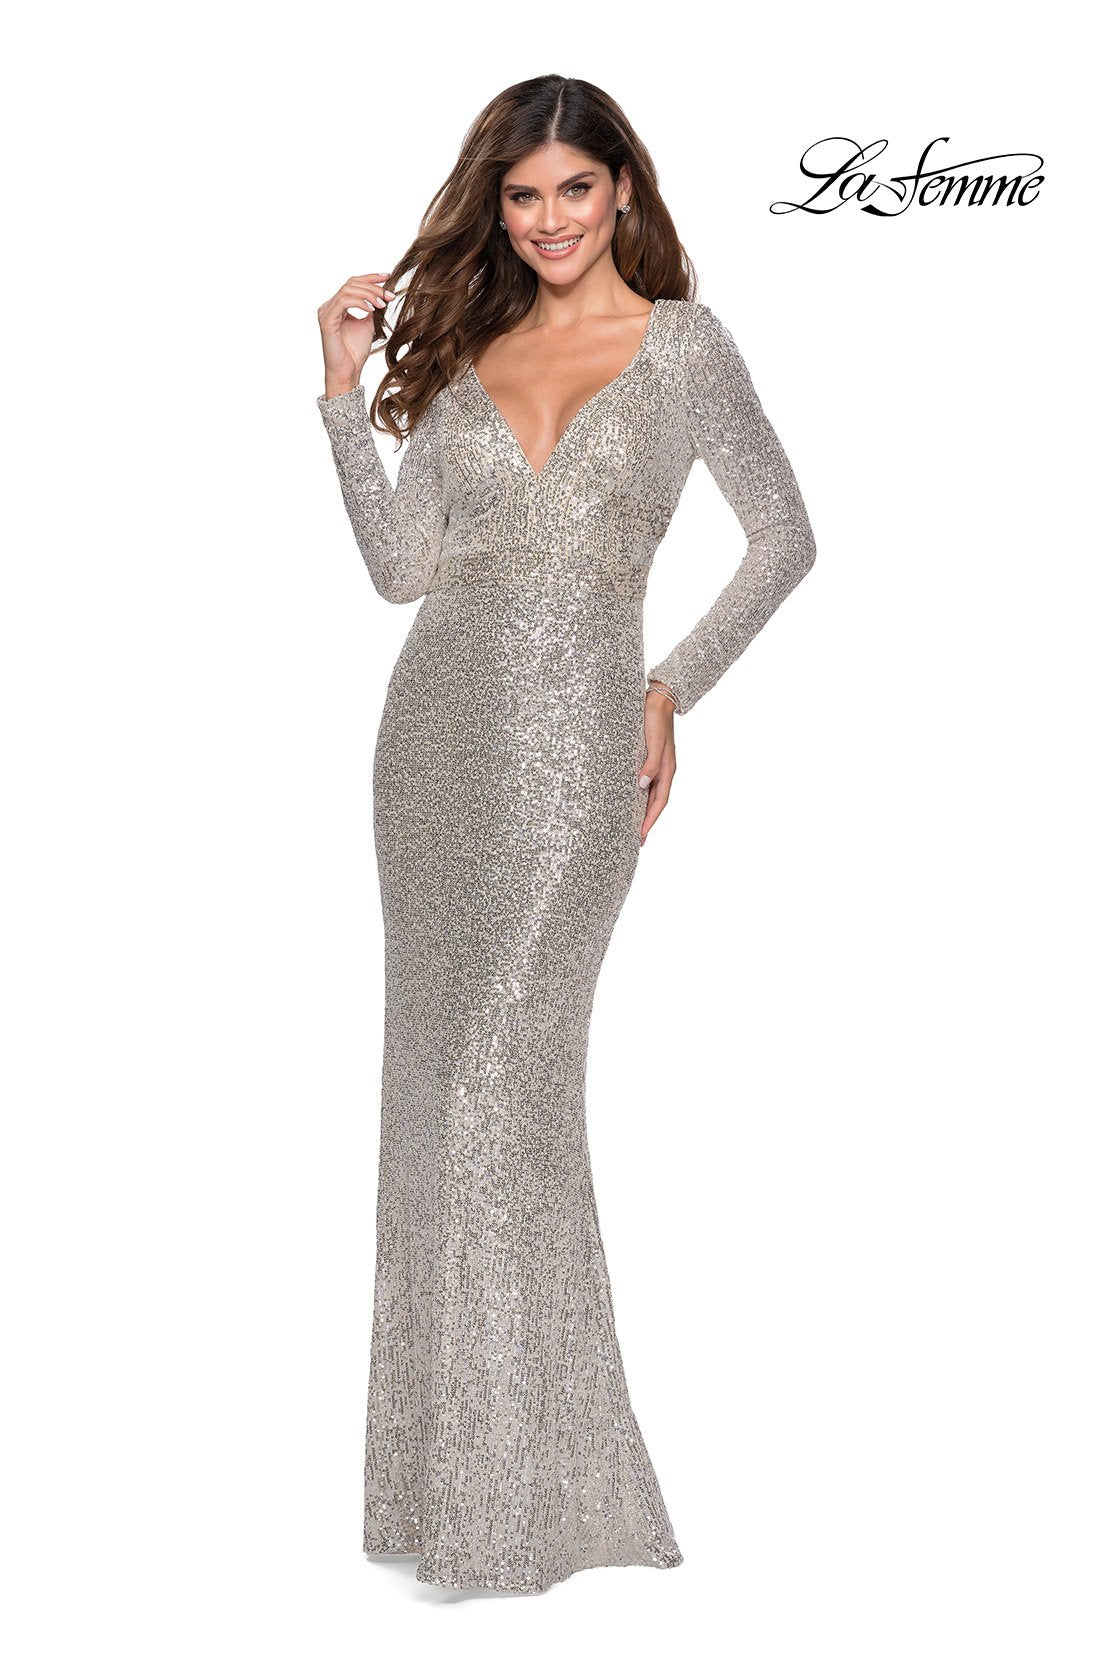 La Femme 28743 prom dress images.  La Femme 28743 is available in these colors: Champagne, Silver.